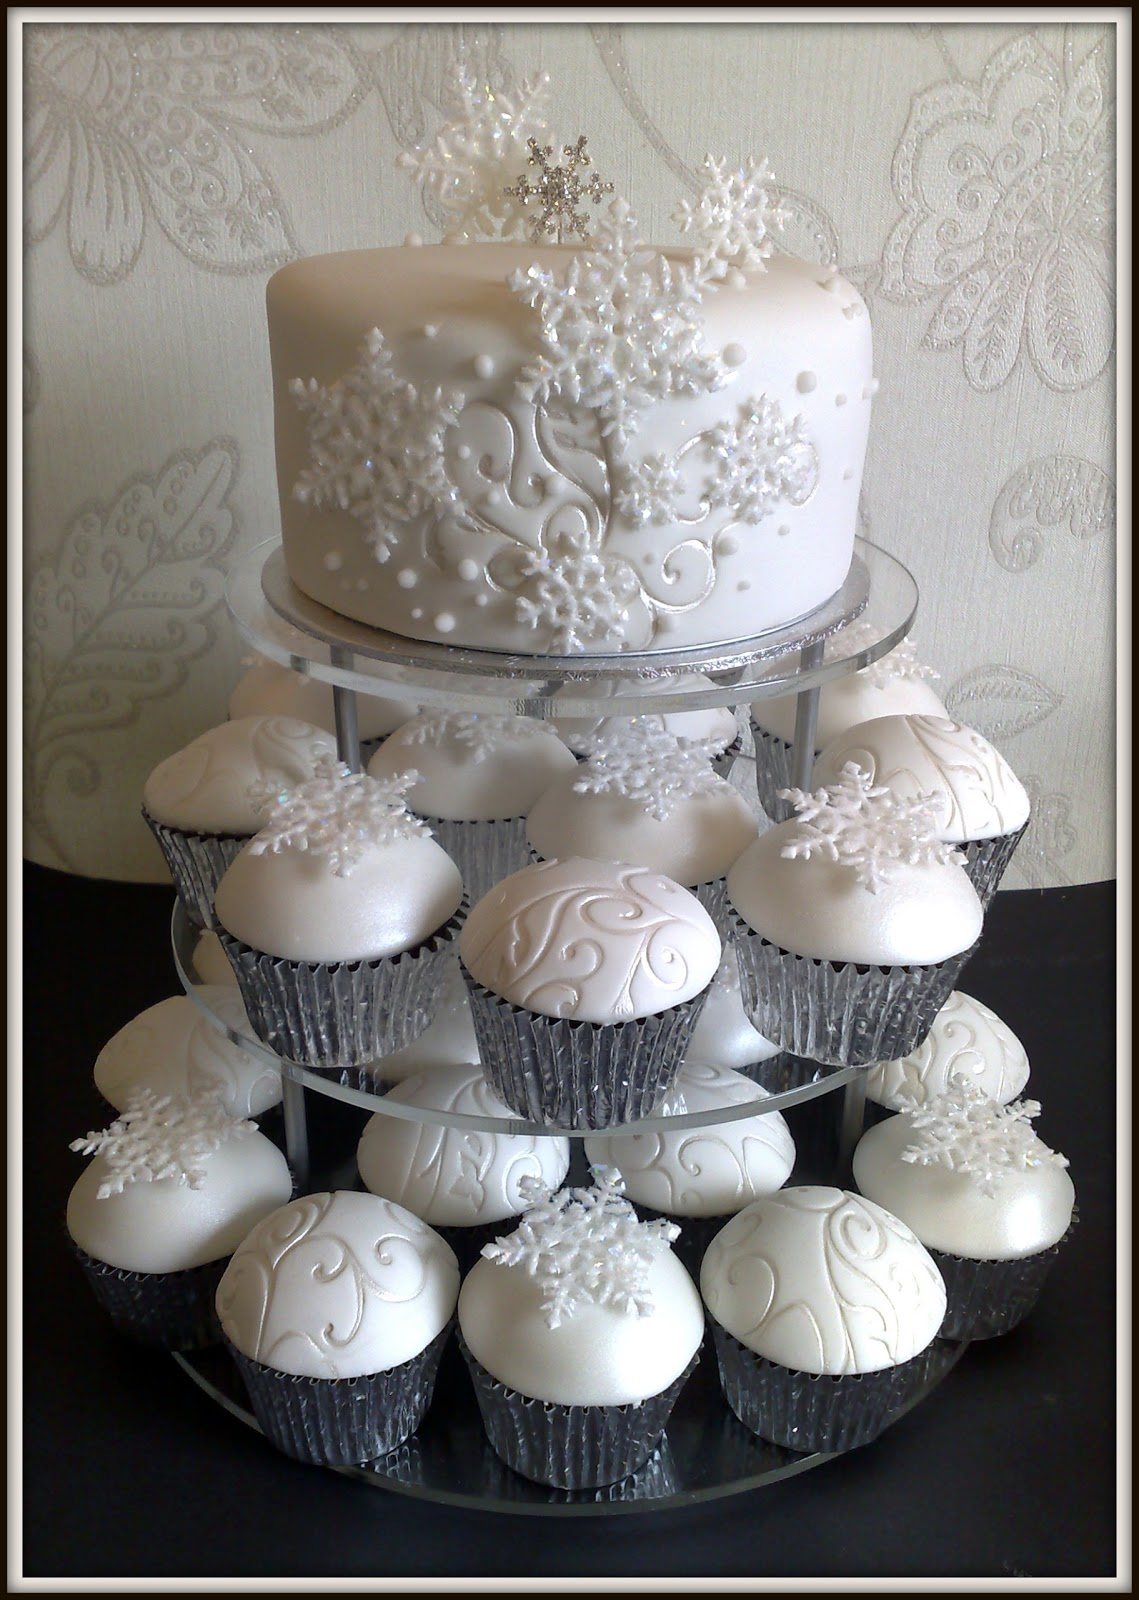 winter wedding cakes cupcakes small things iced leigh amp josephines winter wedding cake 27558